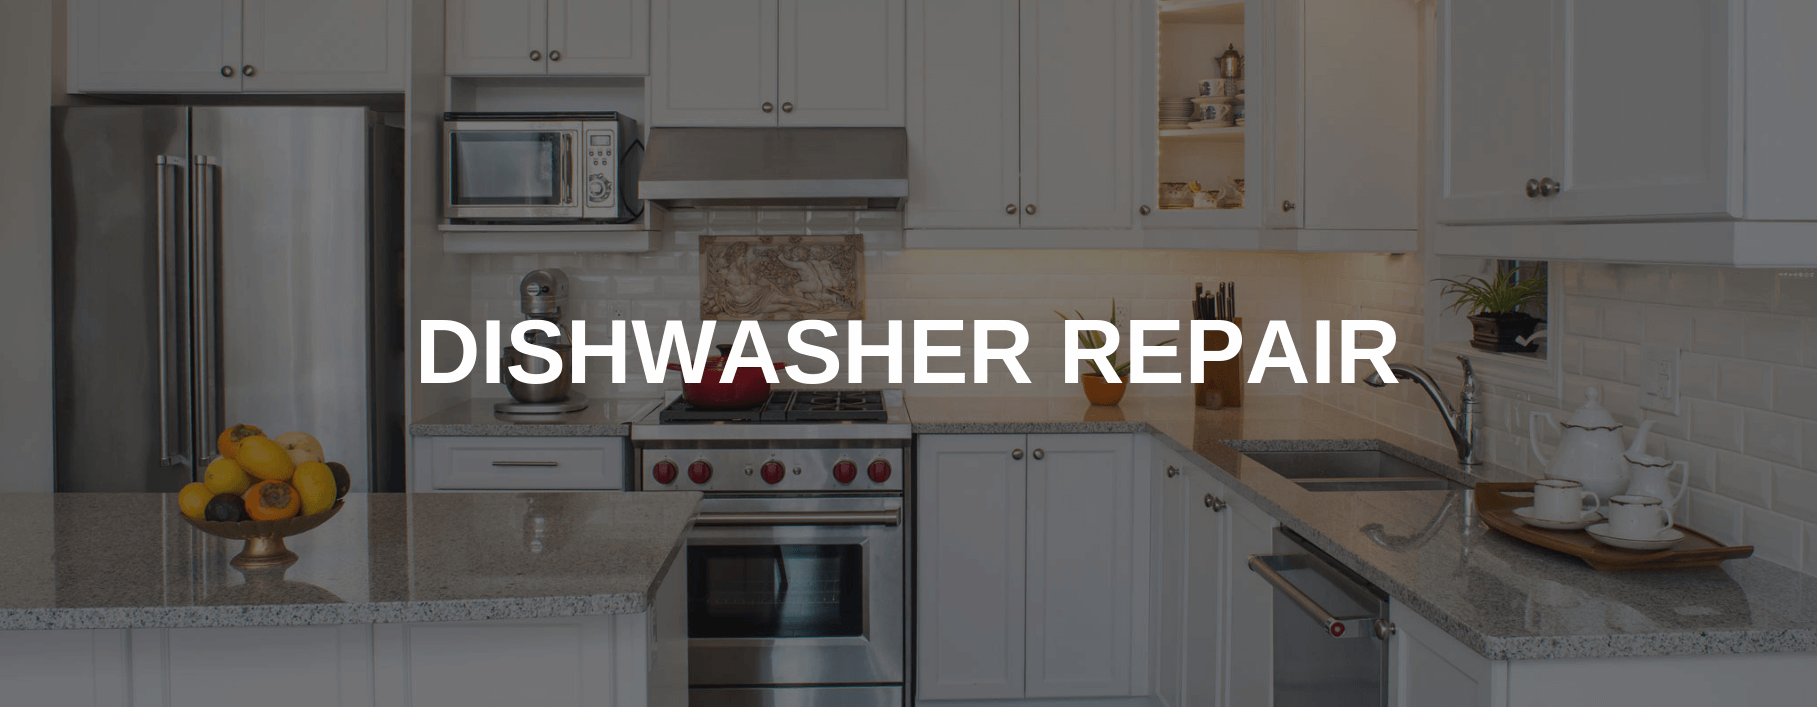 dishwasher repair new britain